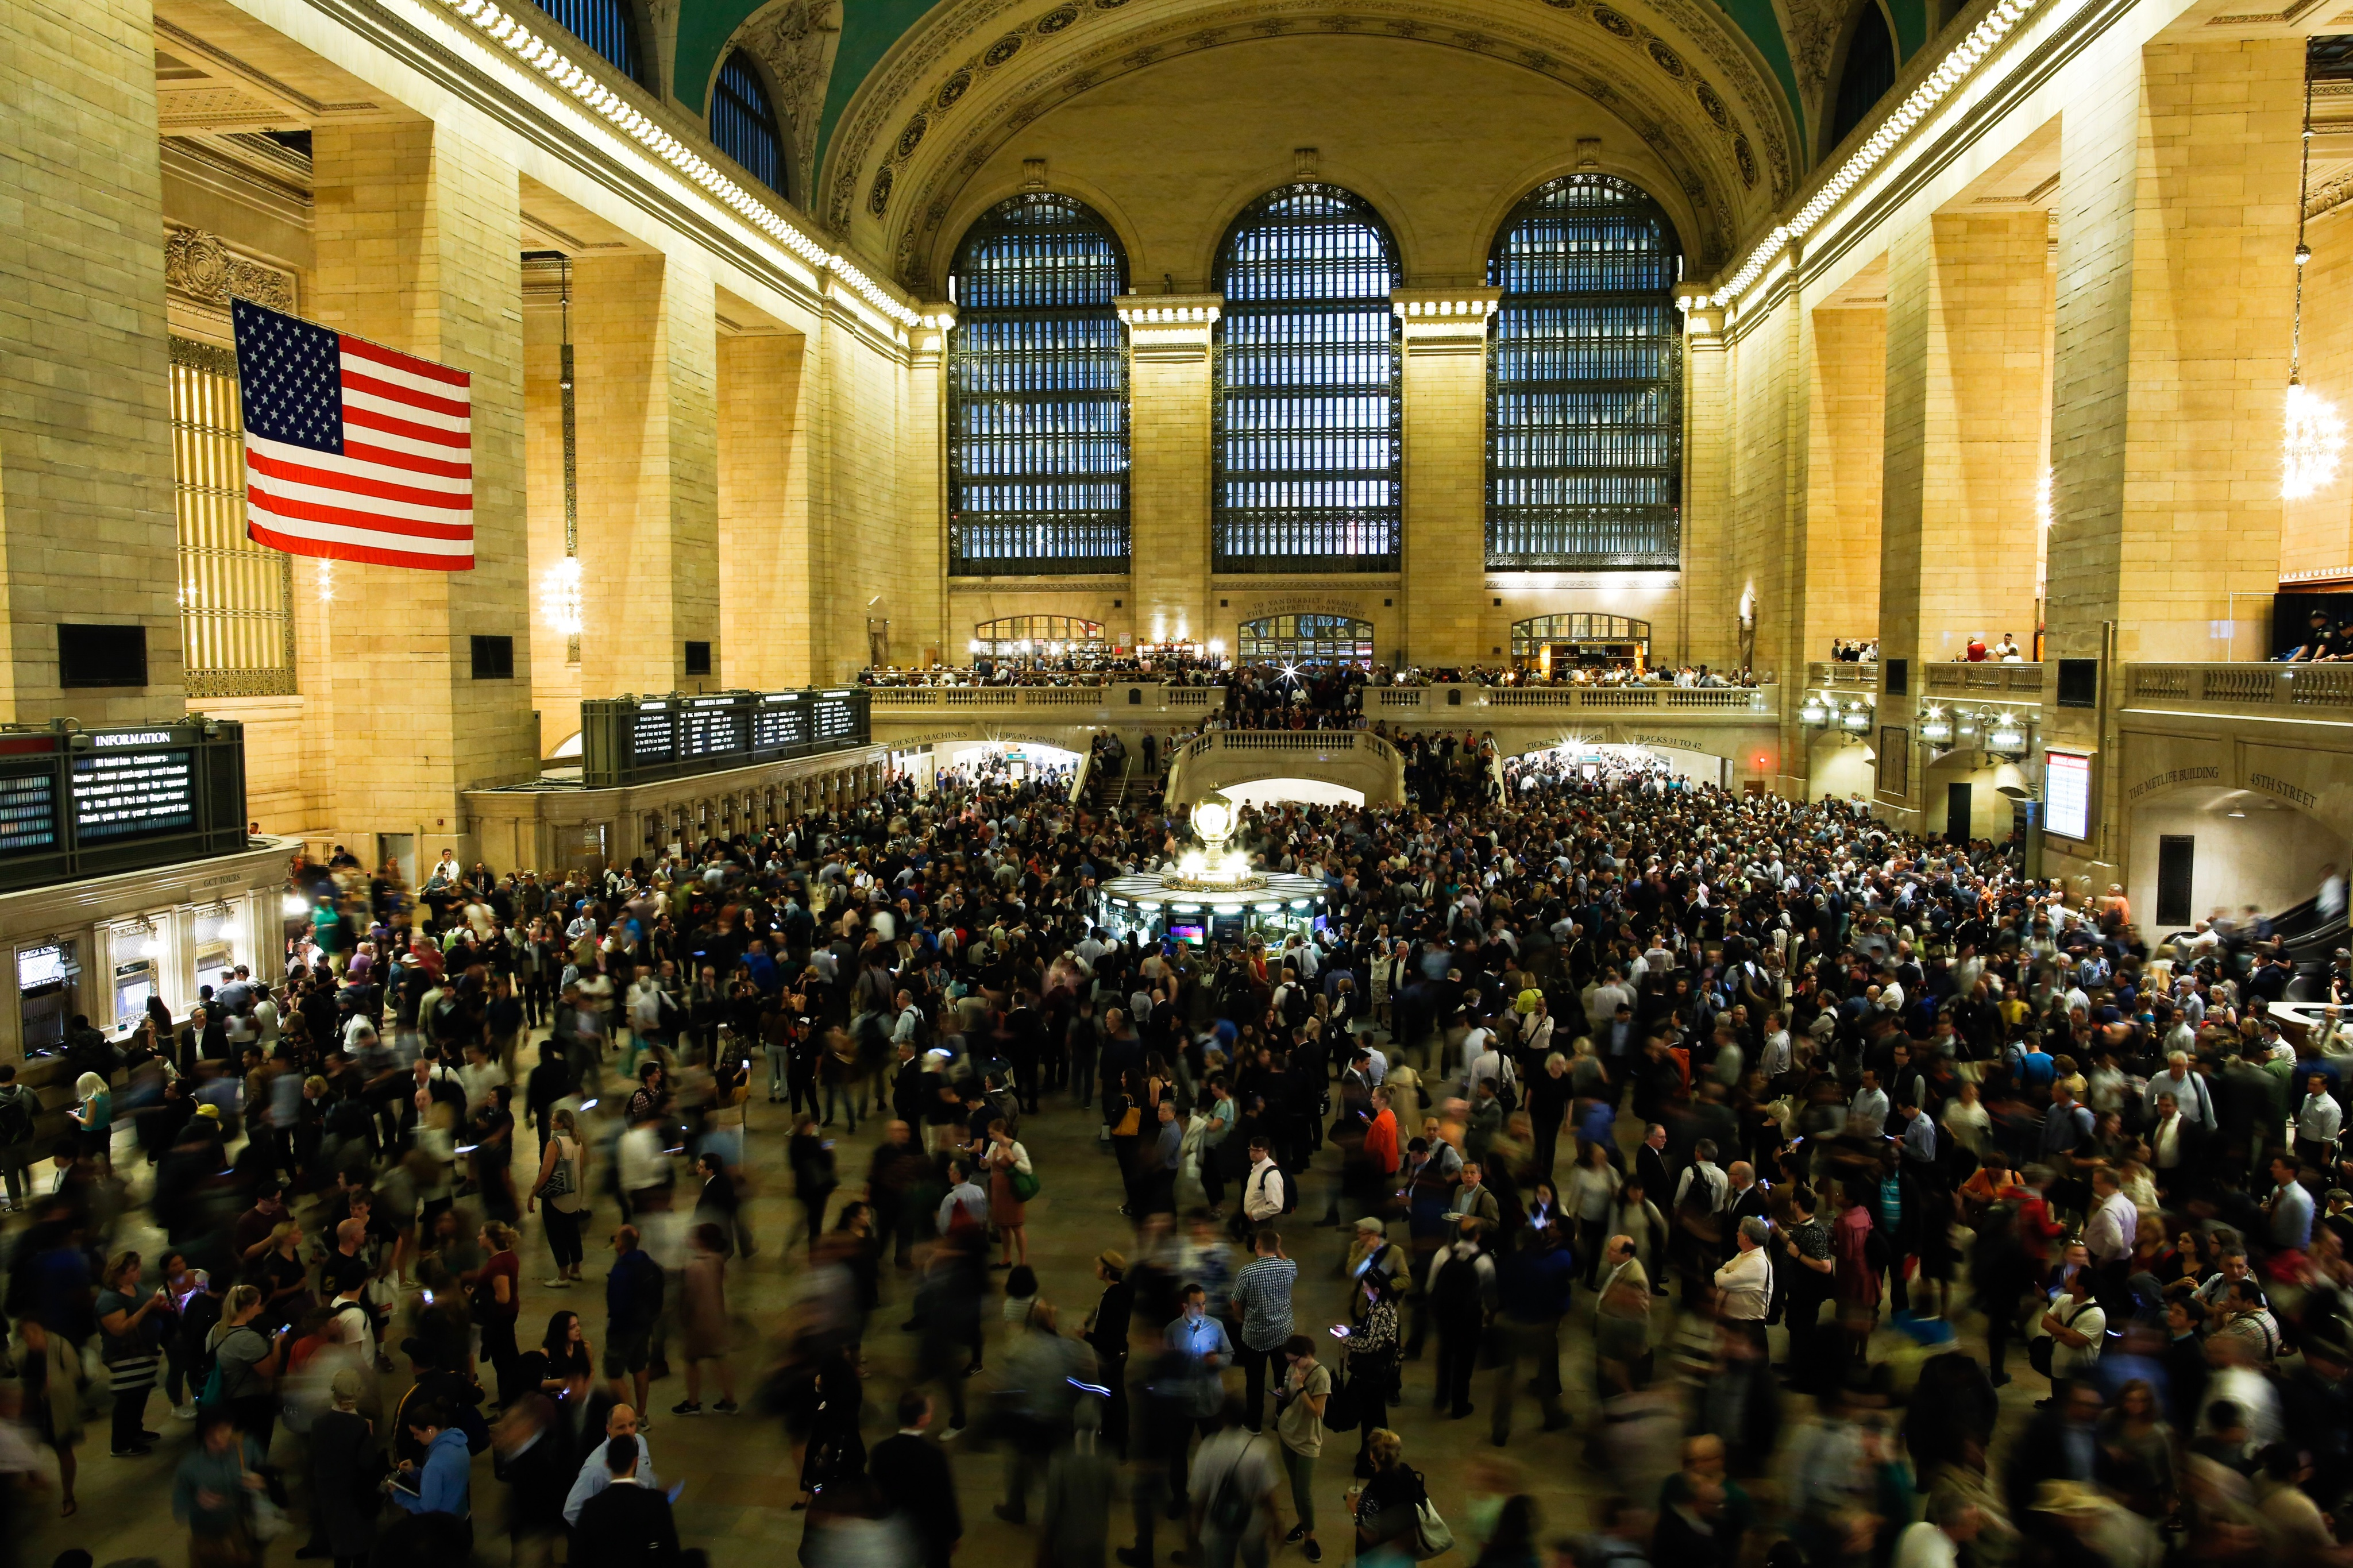 Commuters wait for train service to be restored after a severe thunderstorm downed trees that caused power outages resulting in several Metro-North lines being suspended at Grand Central Terminal on May 15, 2018 in New York City.